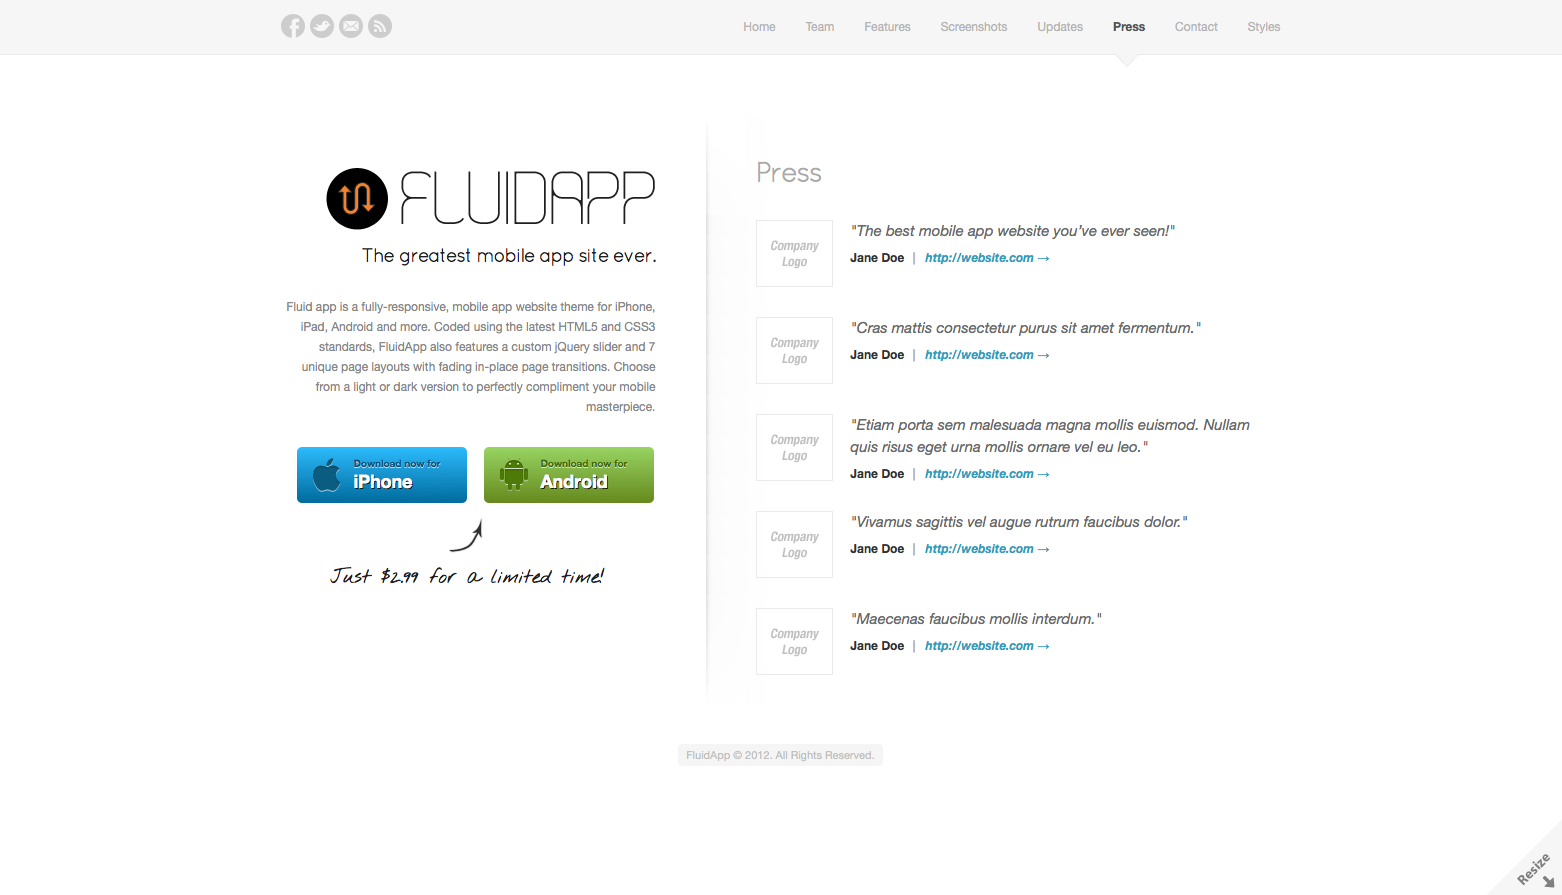 FluidApp - Responsive Mobile App Website Template - Press - A place to showcase feedback and testimonials from customers and the media.